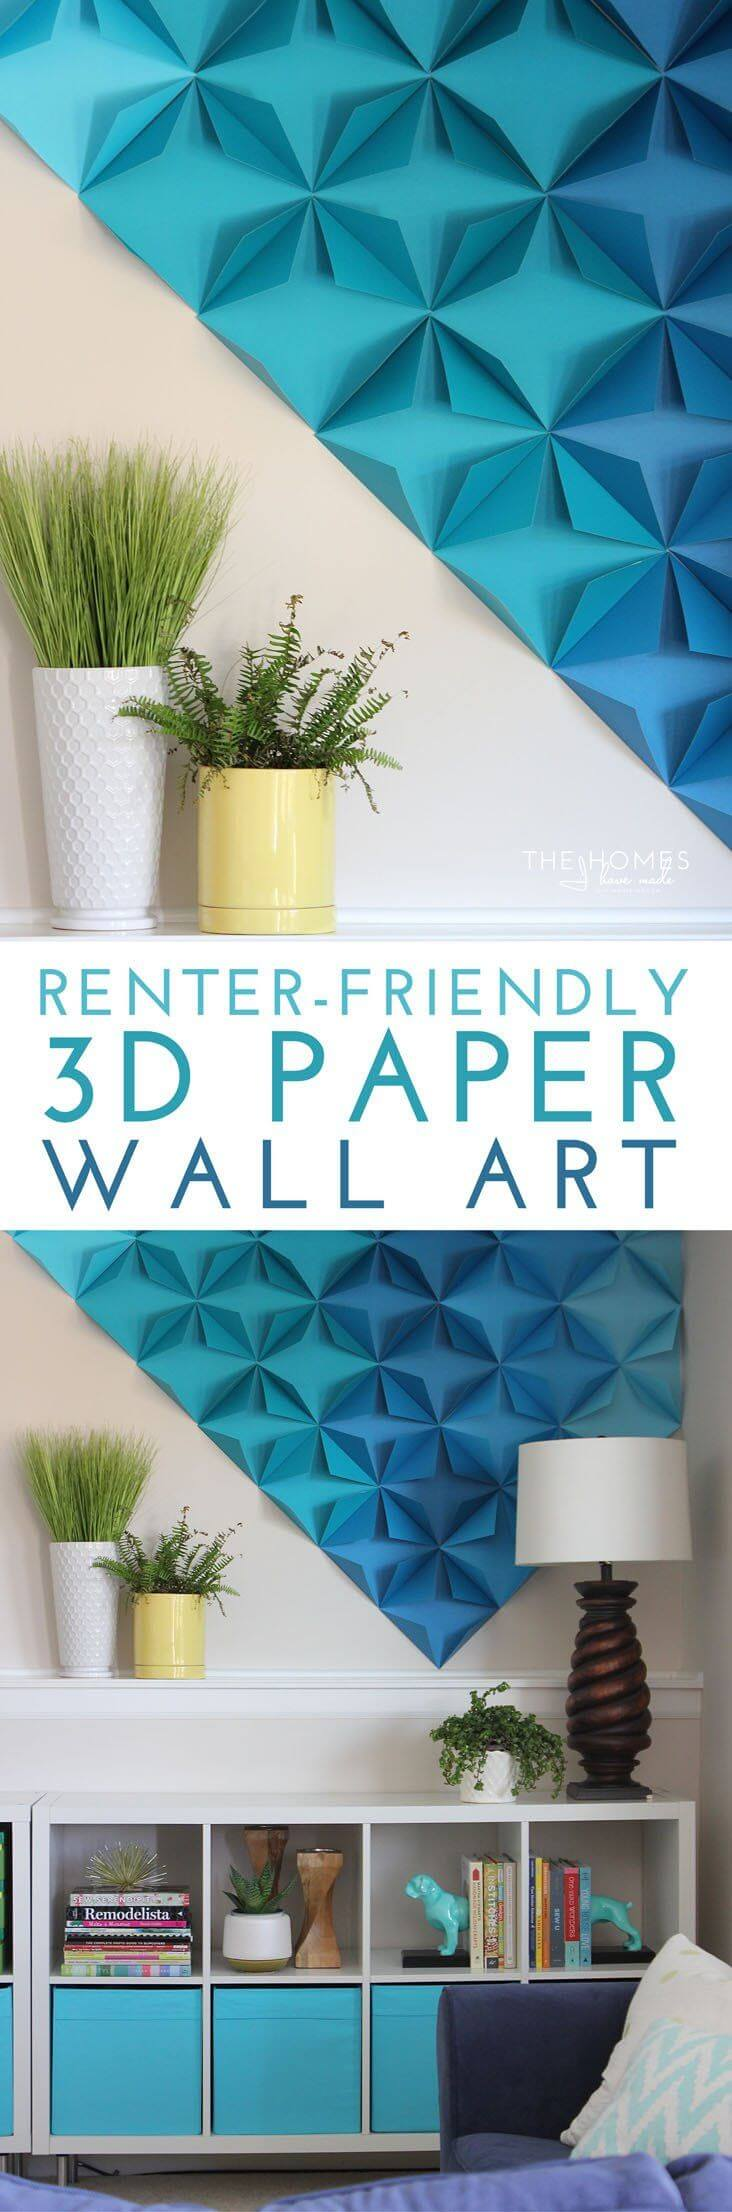 20+ Fun and Colorful Paper Decor Crafts You Can Make